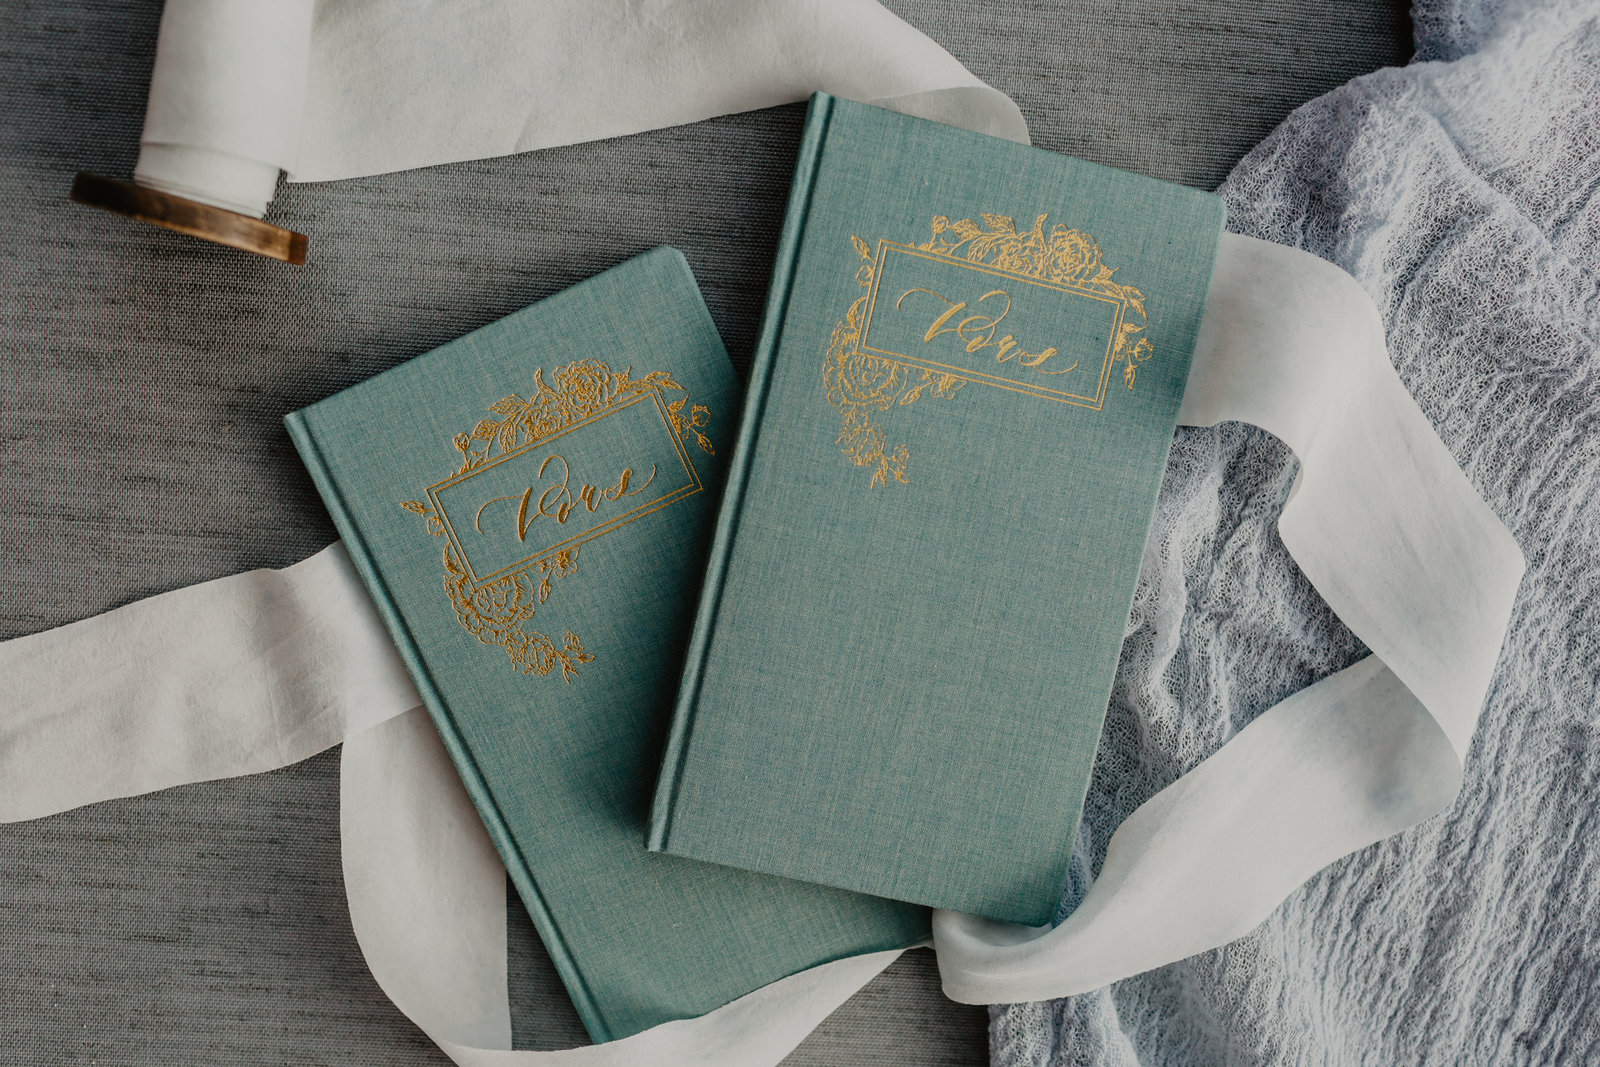 With the a soft mint green, these vow books make for a welcome addition to any cermony